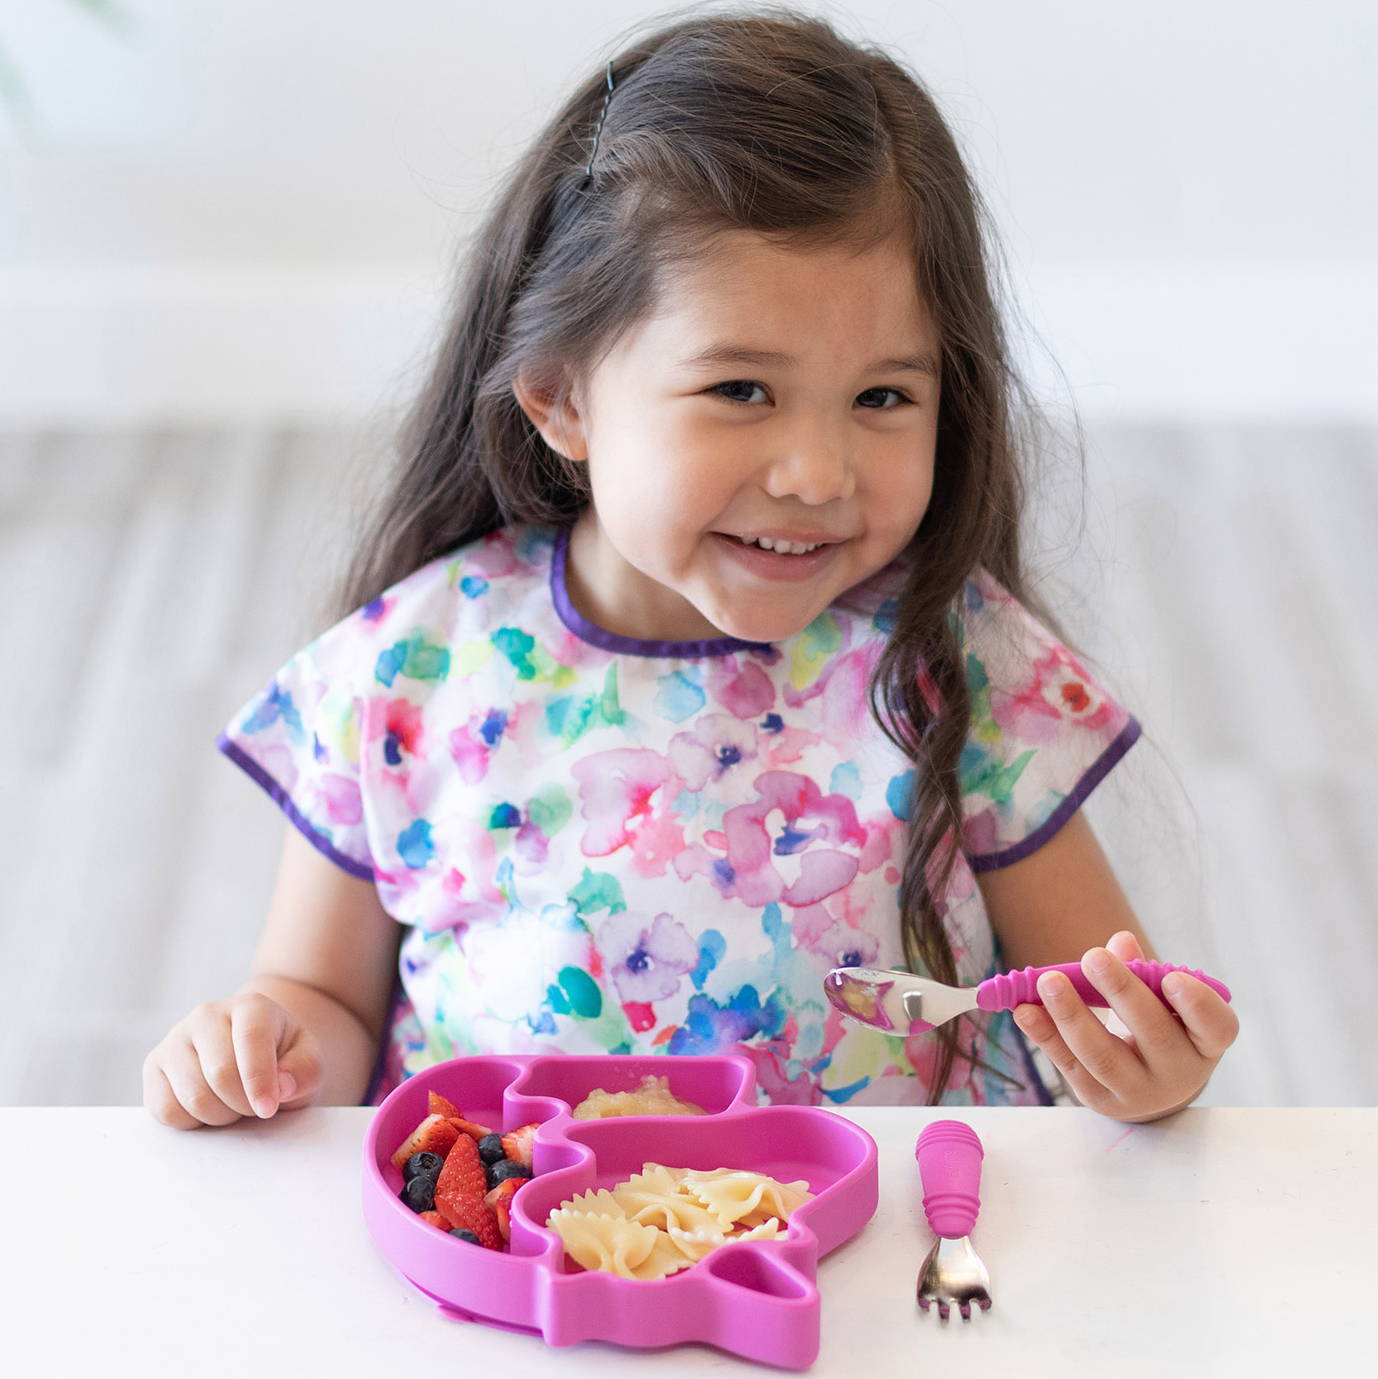 young girl eating out of a bumkins special edition silicone grip dish unicorn and using our bumkins fuchsia colored spoon and fork set